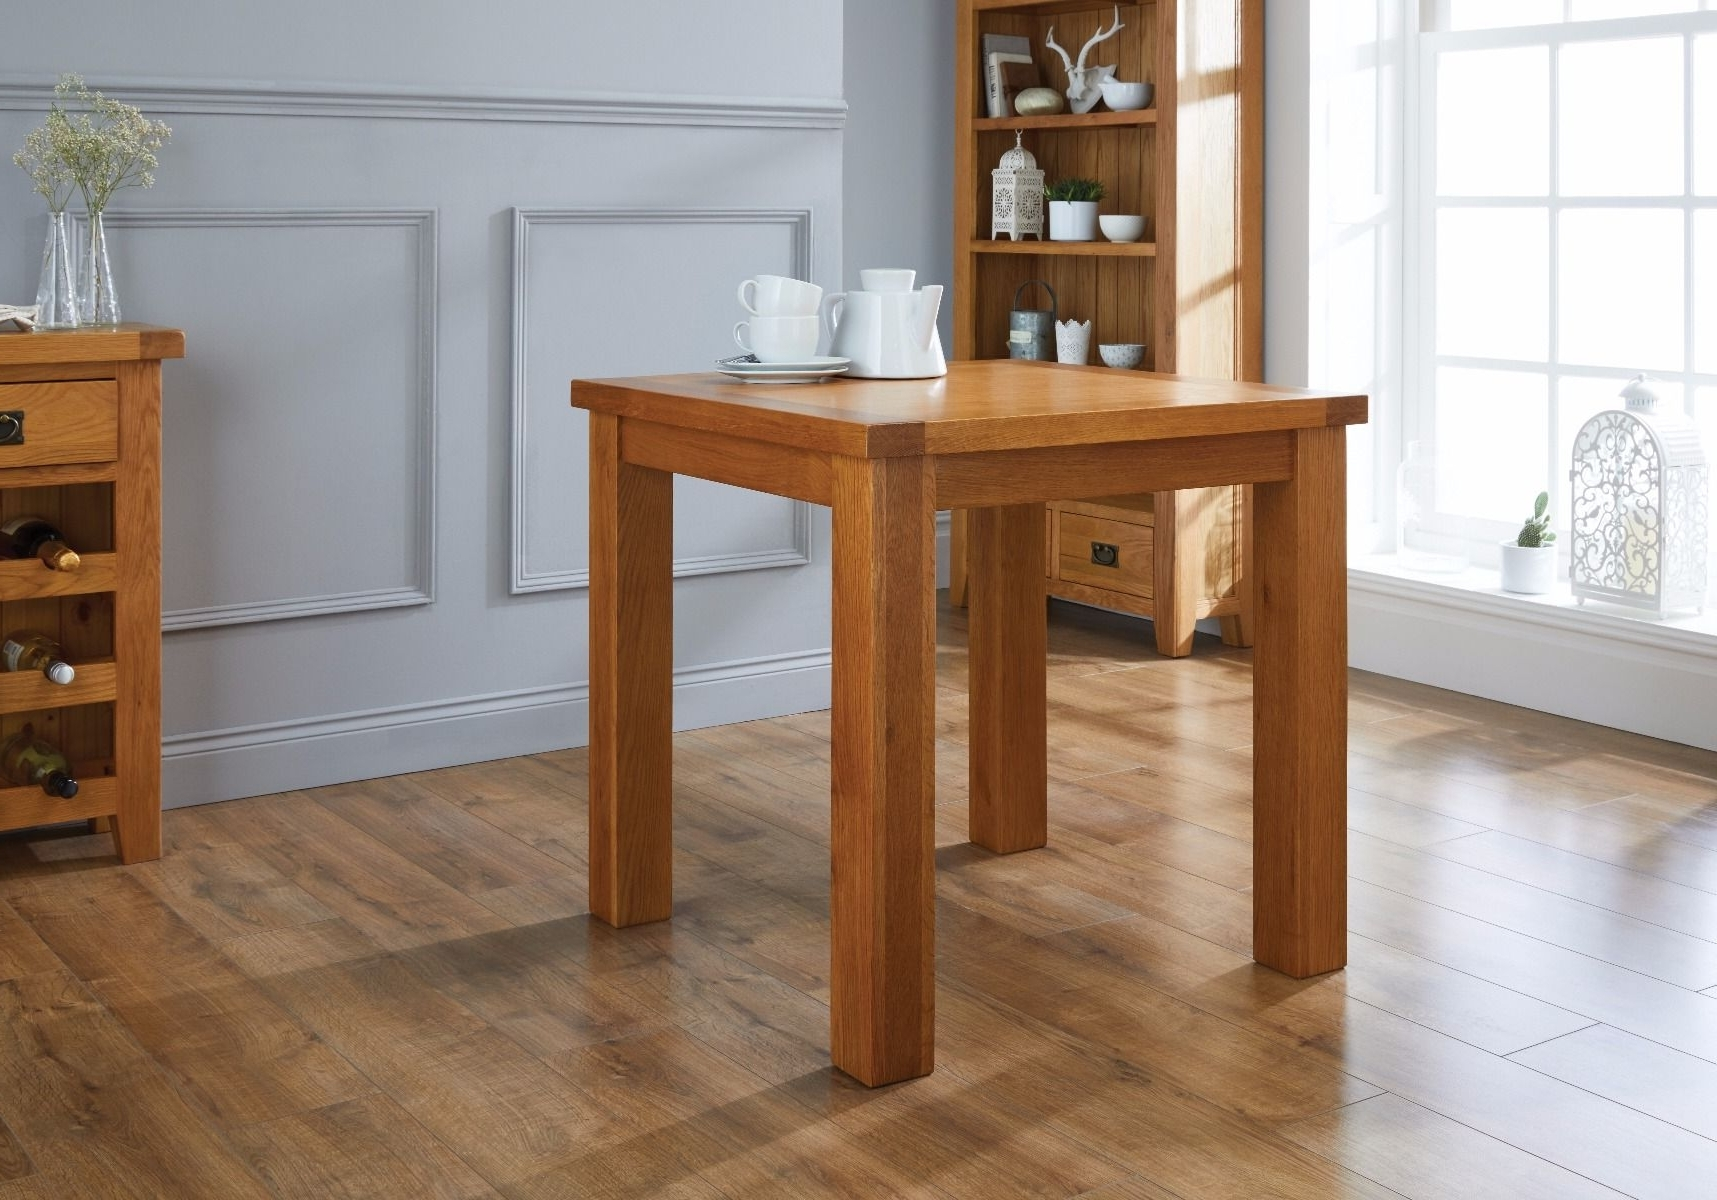 Fashionable Country Oak 80Cm Small Square Oak Dining Room Table With Regard To Square Oak Dining Tables (View 4 of 25)